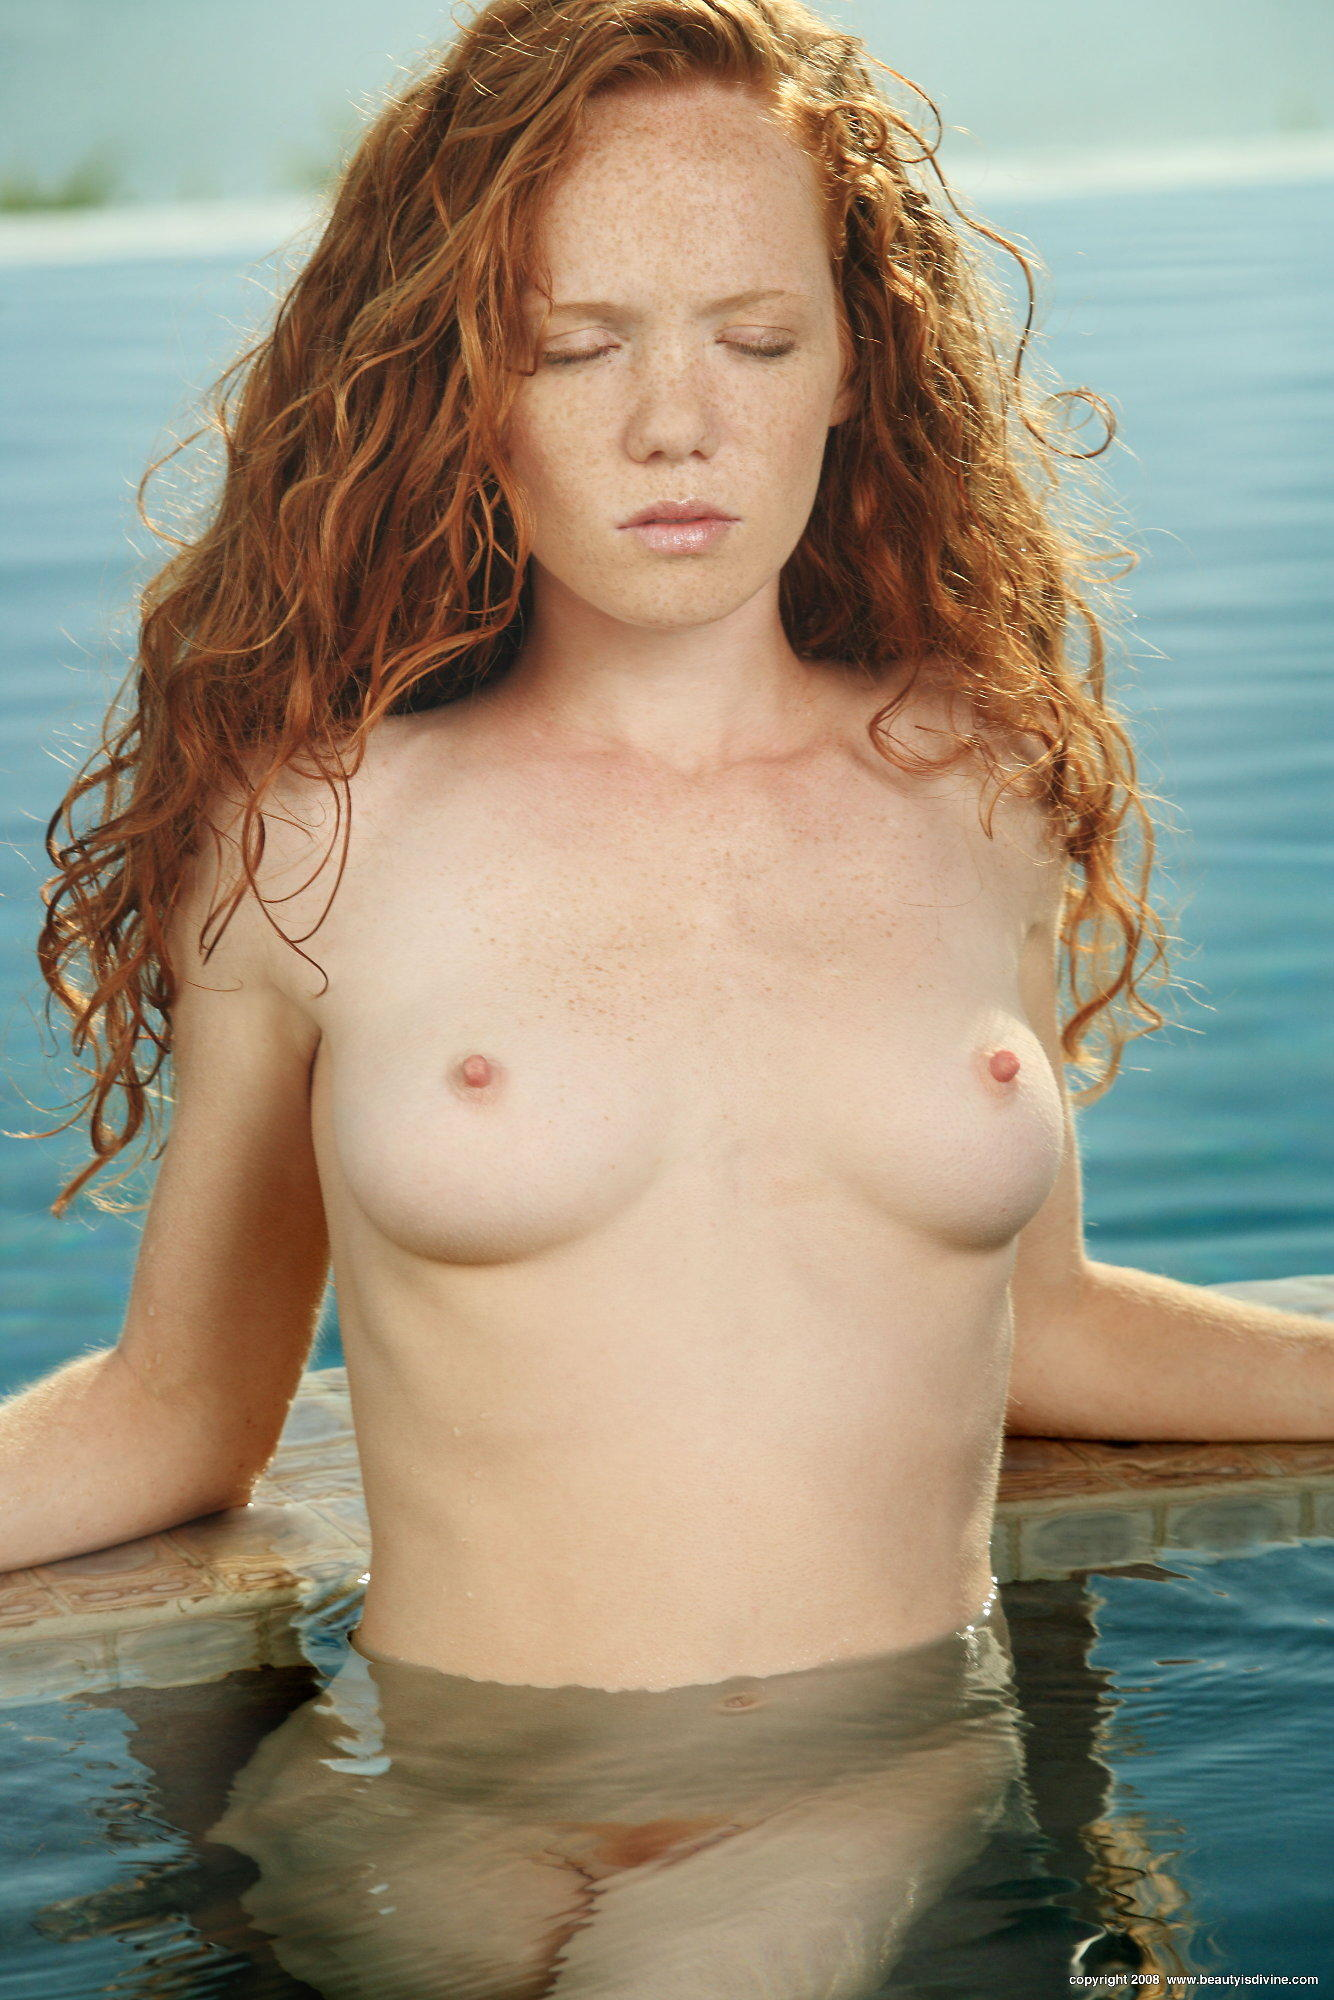 Beautiful nude girls with freckles what